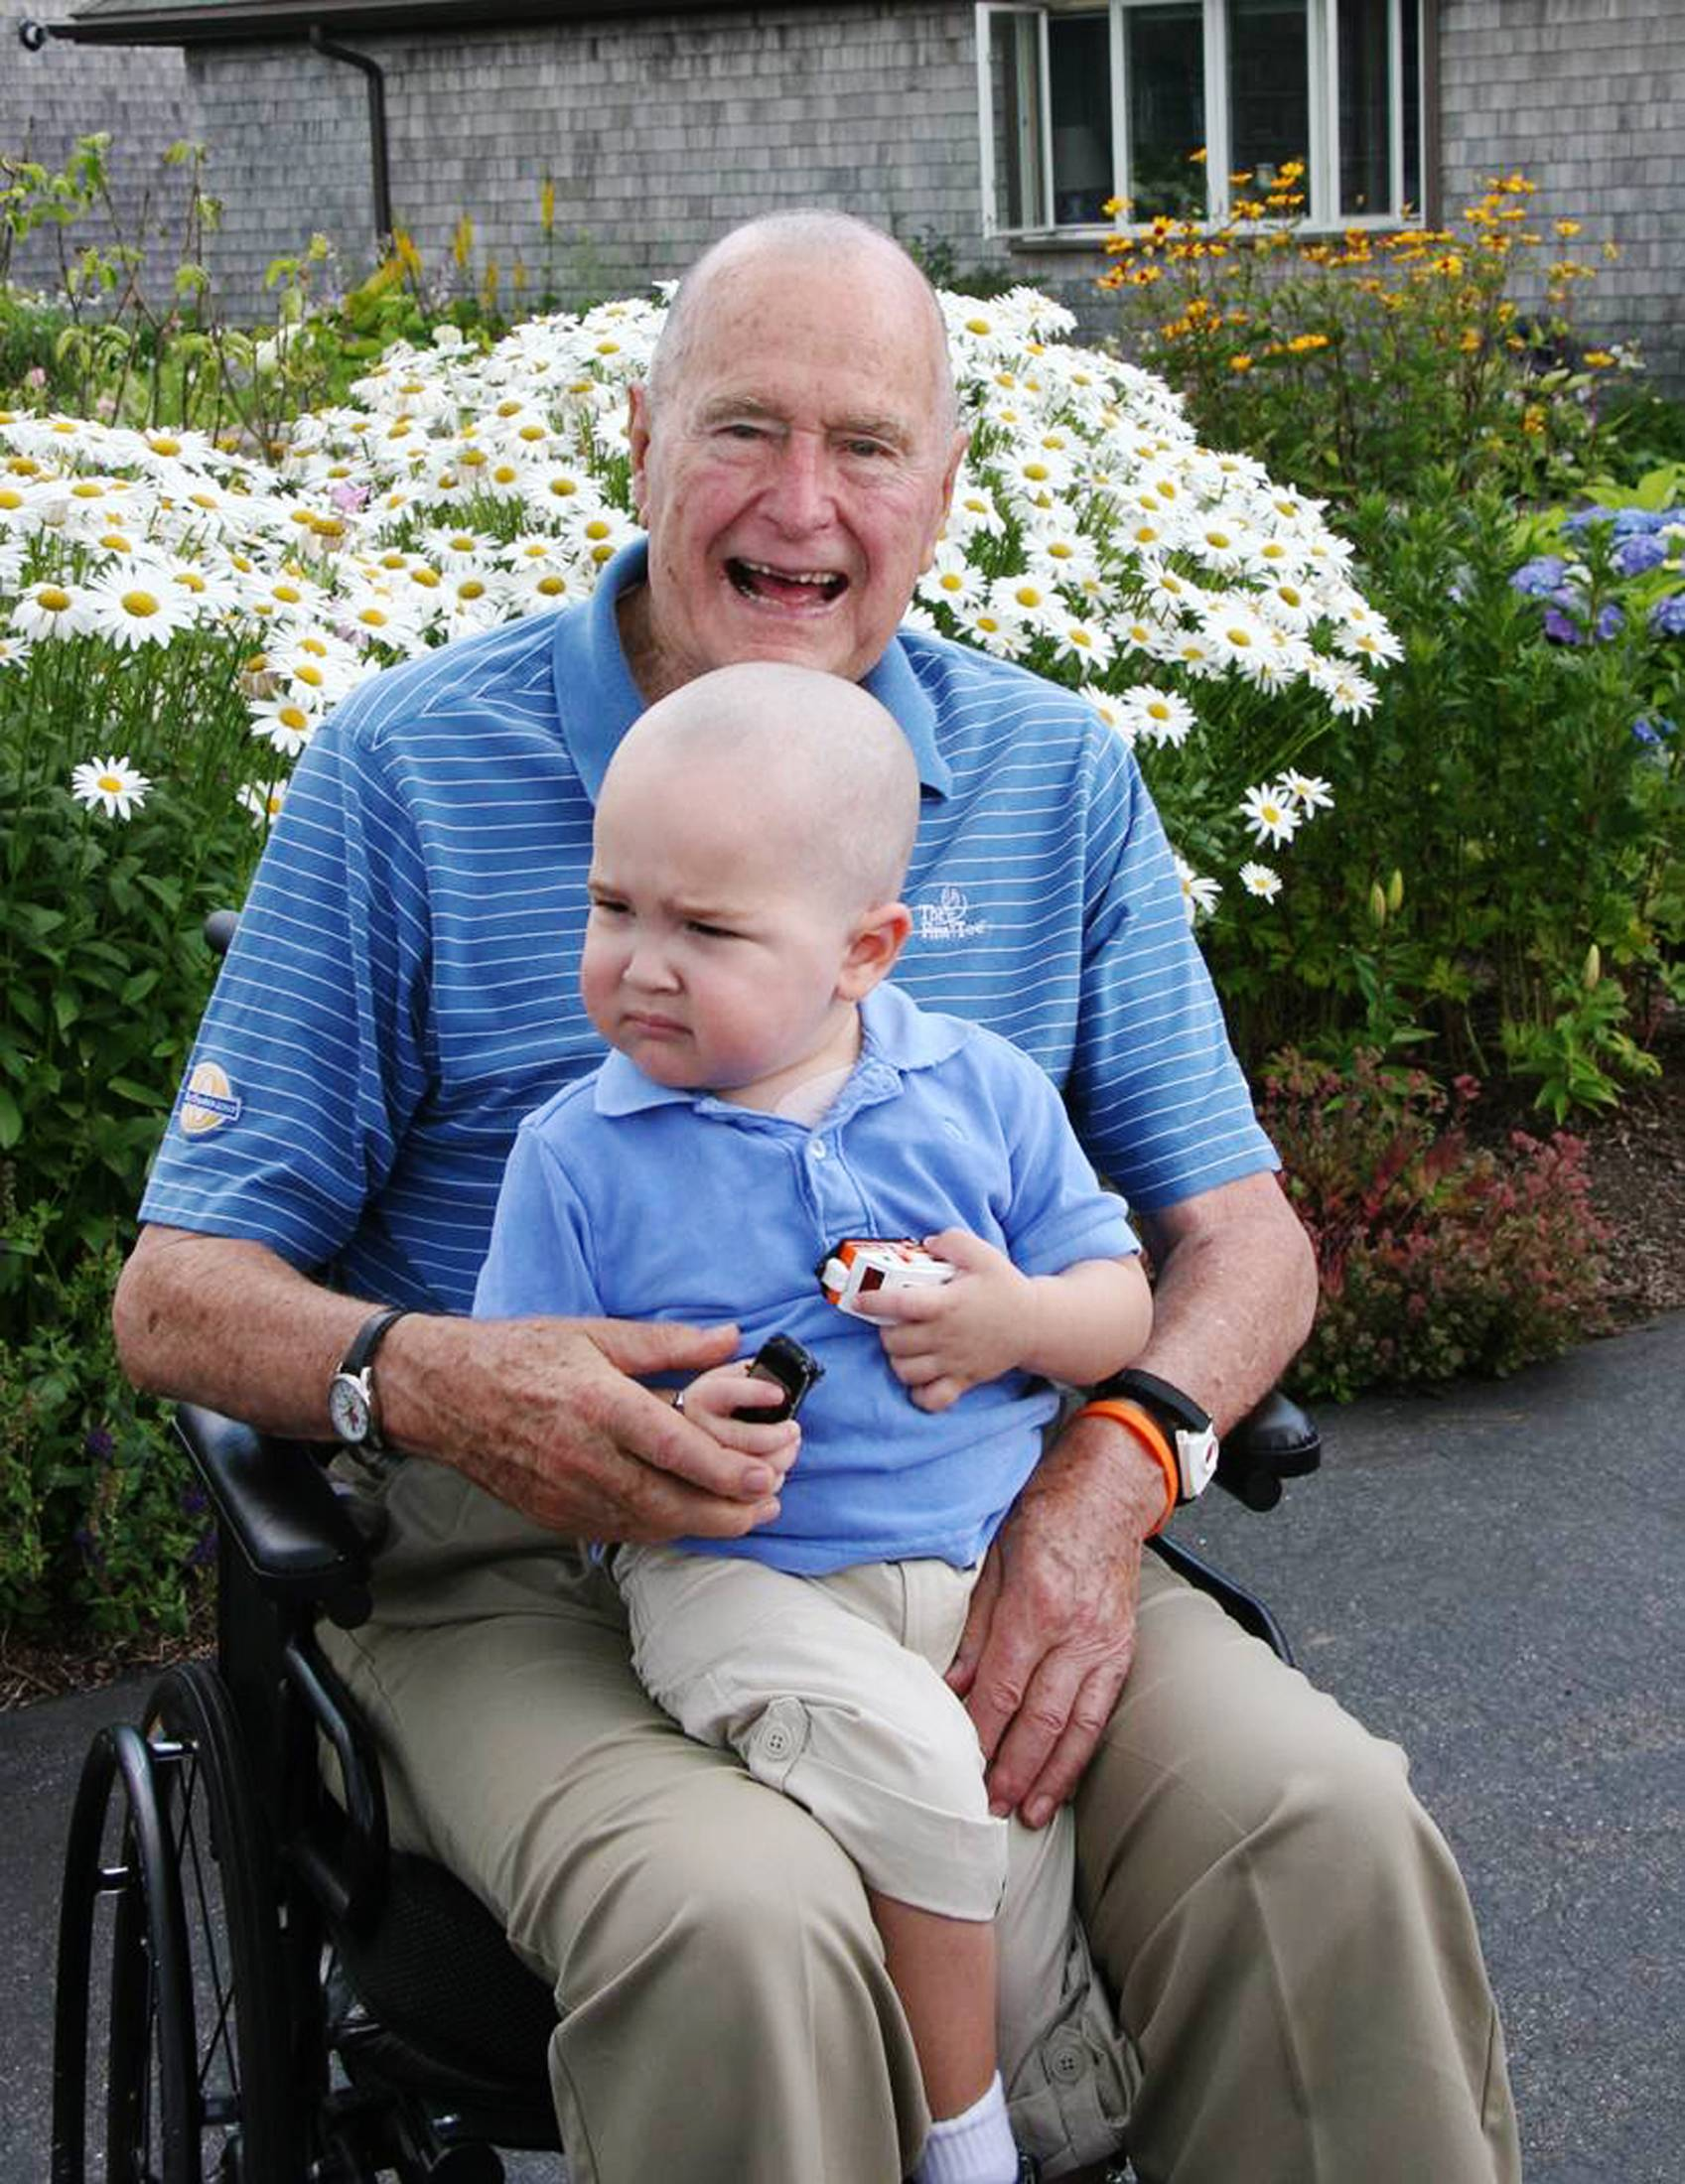 "Former President George H.W. Bush poses with Patrick (last name withheld at family's request), 2, in Kennebunkport, Maine, in 2013. Bush joined members of his Secret Service detail in shaving his head to show solidarity for Patrick, the son of one of the agents who was undergoing cancer treatments. The Secret Service re-shared the touching photo Tuesday on Twitter, referring to the 41st president by his code name, ""Timberwolf."" The agency said it ""wanted to share a memory"" the day before his funeral at Washington National Cathedral."